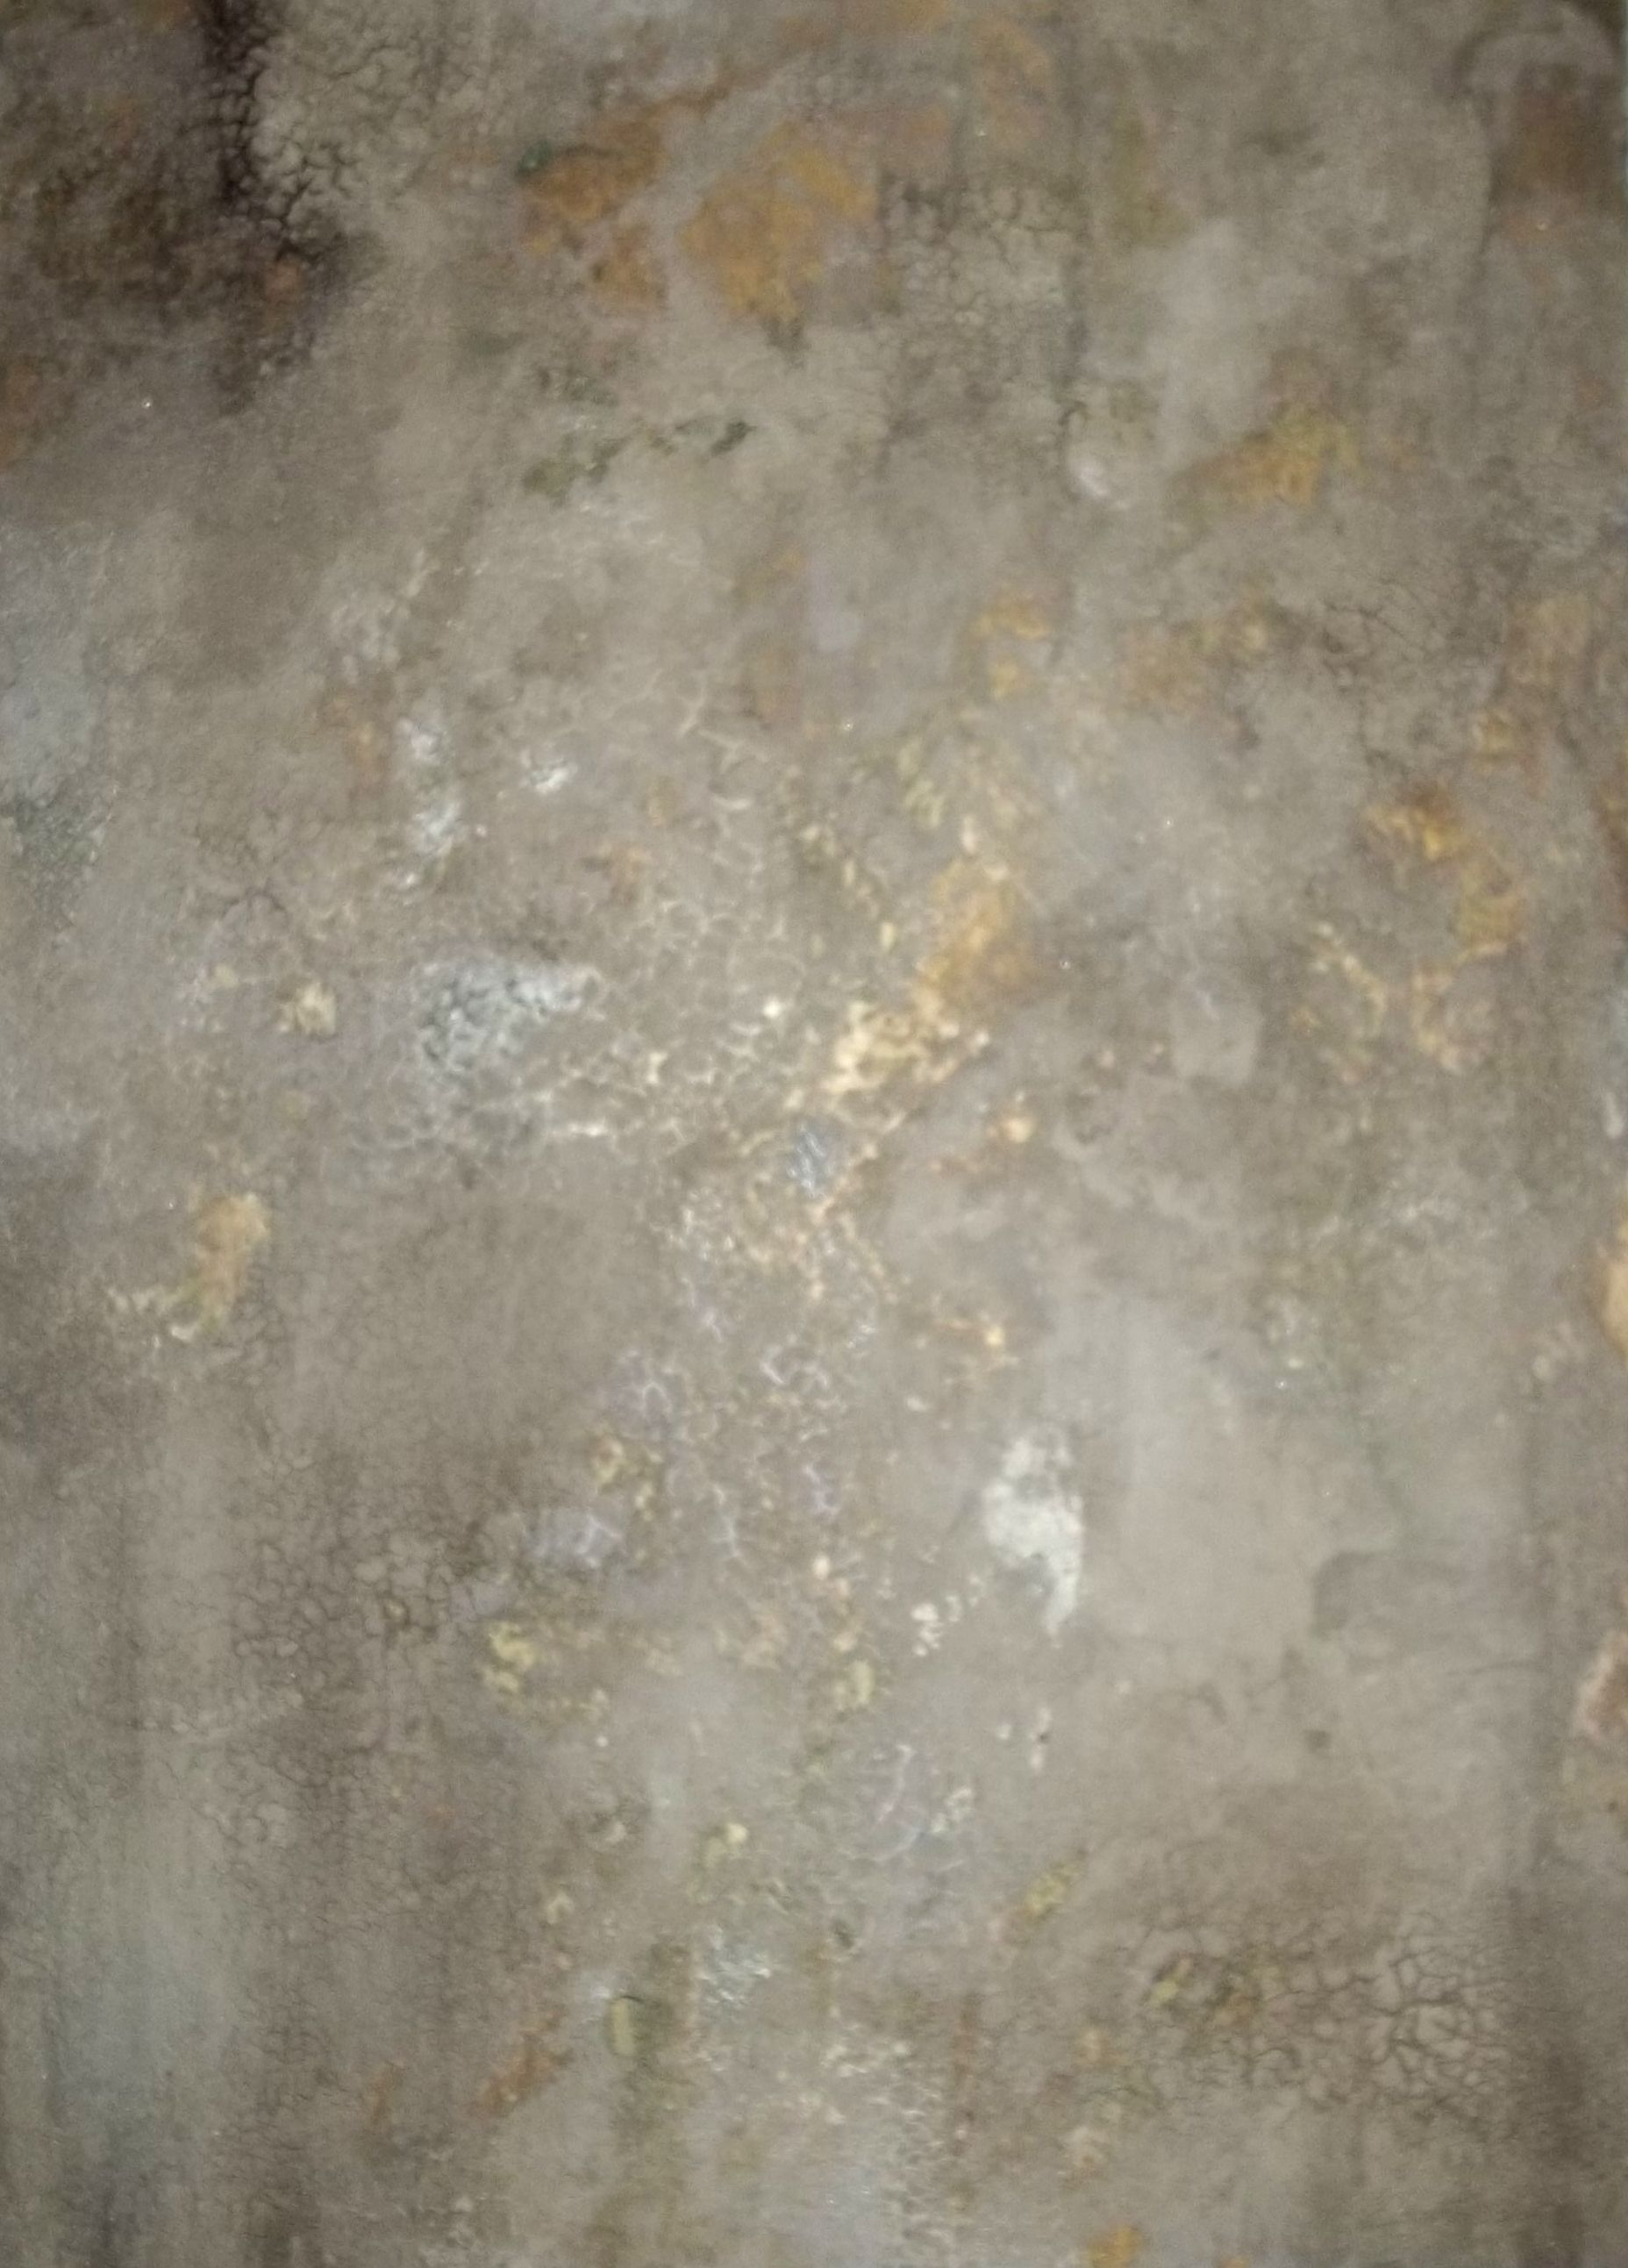 Best Texture For Walls Crackled Plaster Over Gold Foil Faux Finishes By More